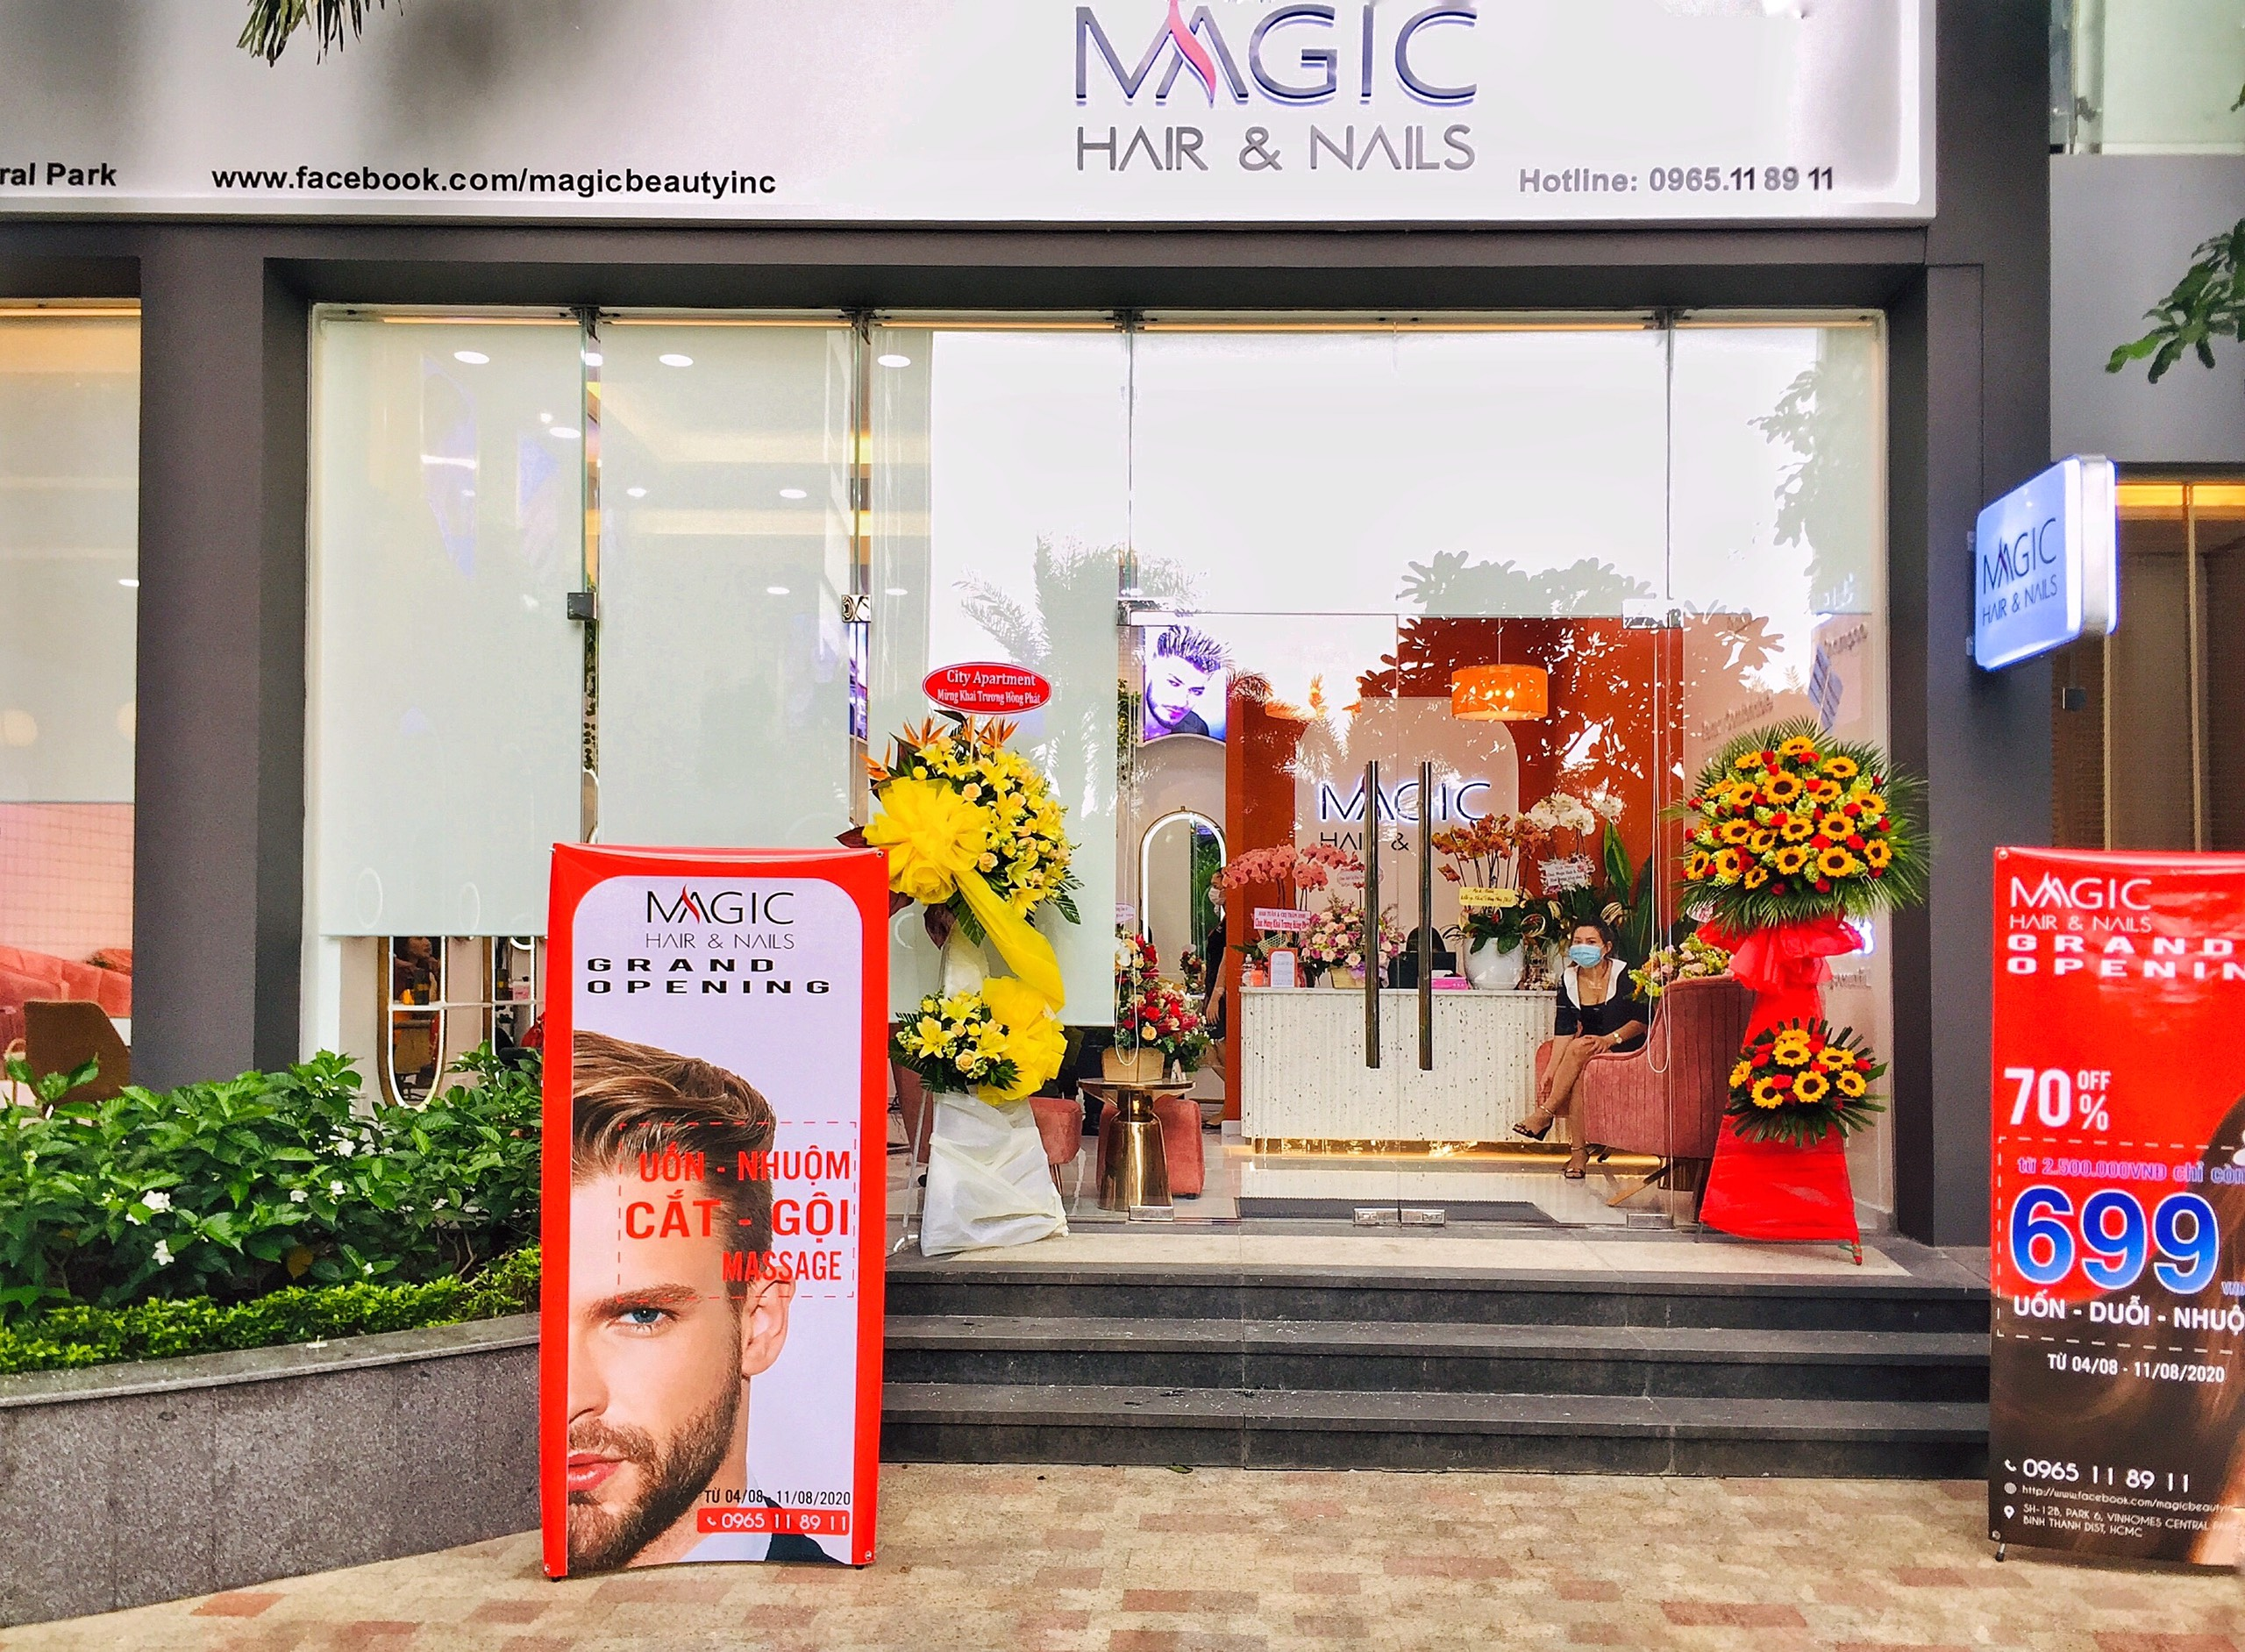 CITY APARTMENT - CHÚC MỪNG SPA MAGIC HAIR & NAILS KHAI TRƯƠNG